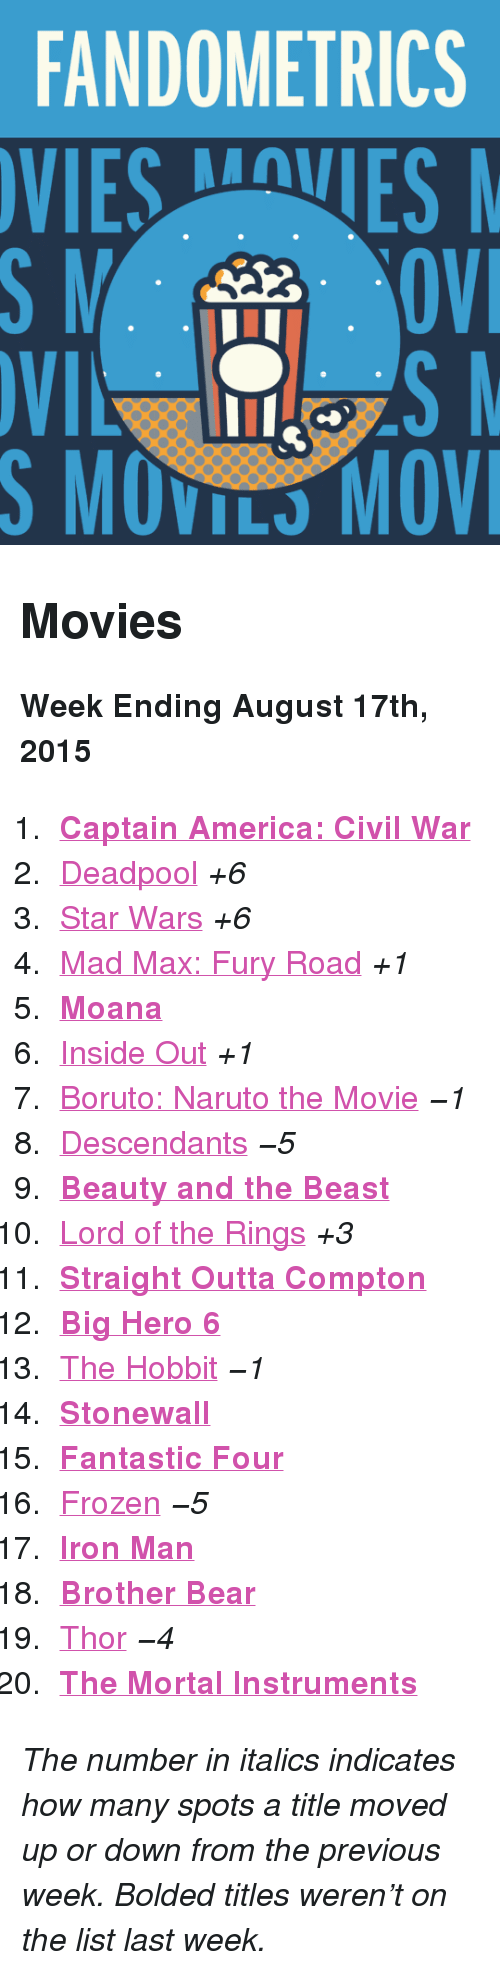 """Straight Outta Compton: FANDOMETRICS  VIESVES  S MOVILS MOV <h2>Movies</h2><p><b>Week Ending August 17th, 2015</b></p><ol><li><a href=""""http://www.tumblr.com/search/captain%20america%20civil%20war""""><b>Captain America: Civil War</b></a></li>  <li><a href=""""http://www.tumblr.com/search/deadpool"""">Deadpool</a><i>+6</i></li>  <li><a href=""""http://www.tumblr.com/search/star%20wars"""">Star Wars</a><i>+6</i></li>  <li><a href=""""http://www.tumblr.com/search/mad%20max"""">Mad Max: Fury Road</a><i>+1</i></li>  <li><a href=""""http://www.tumblr.com/search/moana""""><b>Moana</b></a></li>  <li><a href=""""http://www.tumblr.com/search/inside%20out"""">Inside Out</a><i>+1</i></li>  <li><a href=""""http://www.tumblr.com/search/boruto%20the%20movie"""">Boruto: Naruto the Movie</a><i>−1</i></li>  <li><a href=""""http://www.tumblr.com/search/disney%20descendants"""">Descendants</a><i>−5</i></li>  <li><a href=""""http://www.tumblr.com/search/beauty%20and%20the%20beast""""><b>Beauty and the Beast</b></a></li>  <li><a href=""""http://www.tumblr.com/search/lotr"""">Lord of the Rings</a><i>+3</i></li>  <li><a href=""""http://www.tumblr.com/search/straightouttacompton""""><b>Straight Outta Compton</b></a></li>  <li><b><a href=""""http://www.tumblr.com/search/big%20hero%206"""">Big Hero 6</a></b></li>  <li><a href=""""http://www.tumblr.com/search/the%20hobbit"""">The Hobbit</a><i>−1</i></li>  <li><a href=""""http://www.tumblr.com/search/stonewall""""><b>Stonewall</b></a></li>  <li><a href=""""http://www.tumblr.com/search/fantastic%20four""""><b>Fantastic Four</b></a></li>  <li><a href=""""http://www.tumblr.com/search/frozen"""">Frozen</a><i>−5</i></li>  <li><a href=""""http://www.tumblr.com/search/iron%20man""""><b>Iron Man</b></a></li>  <li><a href=""""http://www.tumblr.com/search/brother%20bear""""><b>Brother Bear</b></a></li>  <li><a href=""""http://www.tumblr.com/search/thor"""">Thor</a><i>−4</i></li>  <li><a href=""""http://www.tumblr.com/search/the%20mortal%20instruments""""><b>The Mortal Instruments</b></a></li></ol><p><i>The number in italics indicates how many spots a title moved up or """